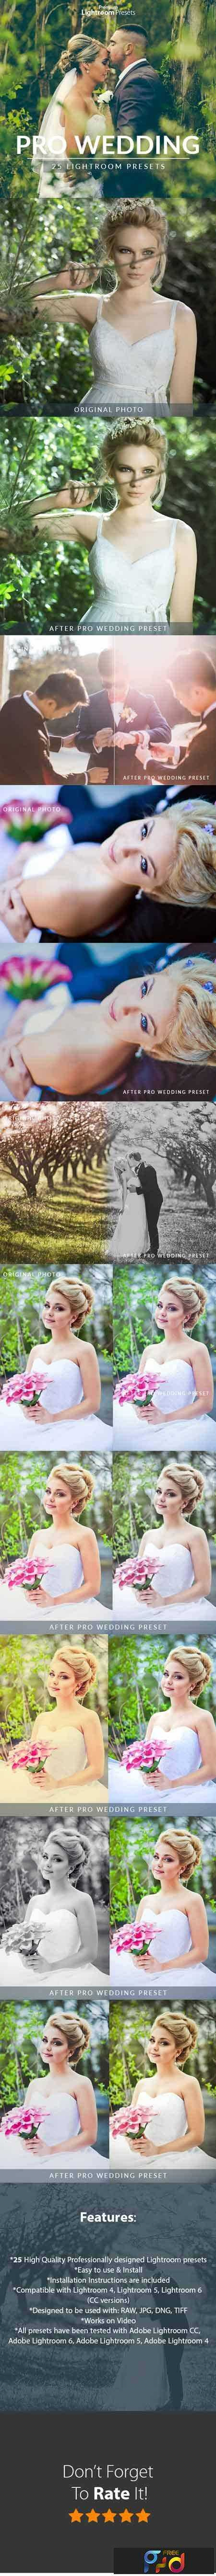 FreePsdVn.com_1705091_LIGHTROOM_25_pro_wedding_lightroom_presets_20423858